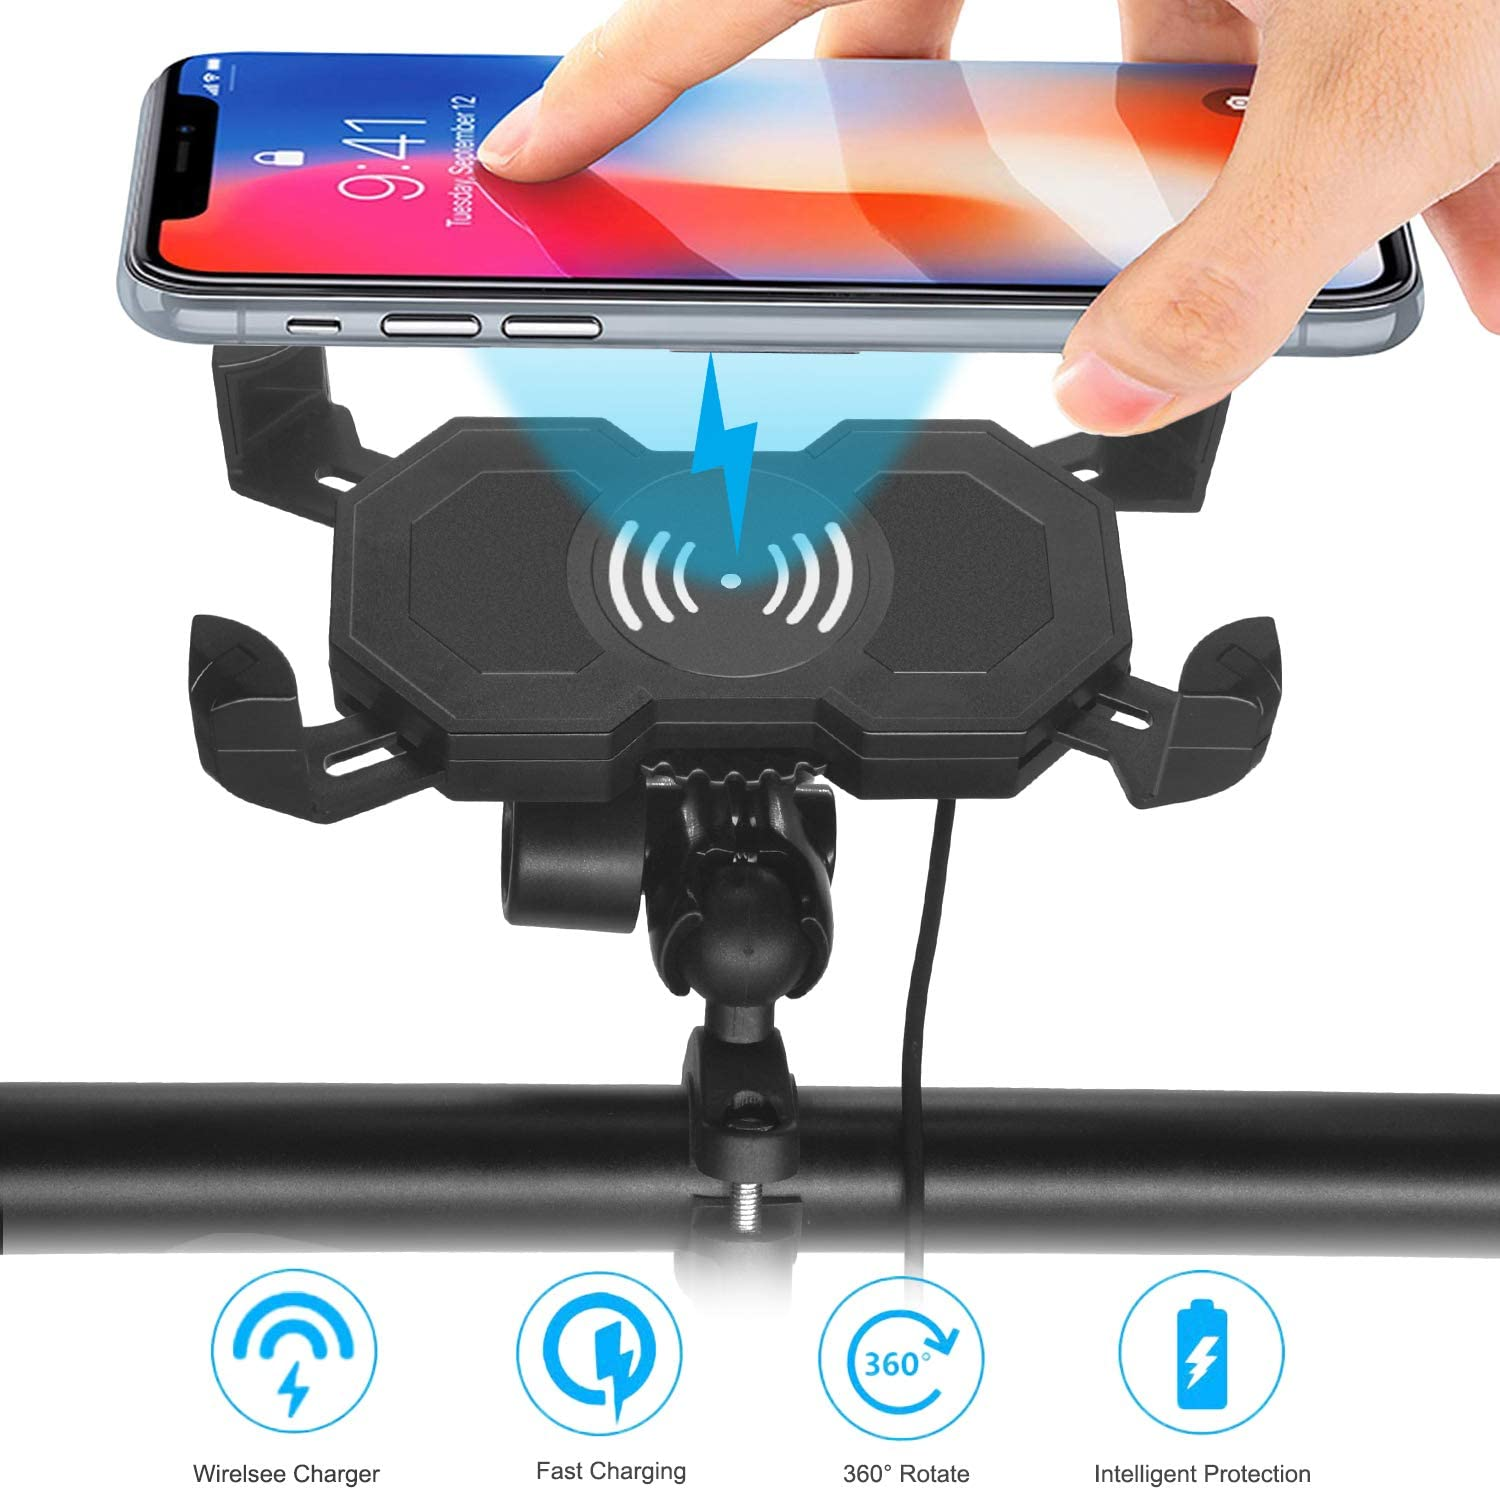 Cell Phone Holder//Motorcycle Accessories Fix on Handlebars//Mirror for All 3.5 to 6 Phones Anti Shake with 360/° Adjustable leepiya Motorcycle Phone Mount with USB Charger Port Not Cover Camera